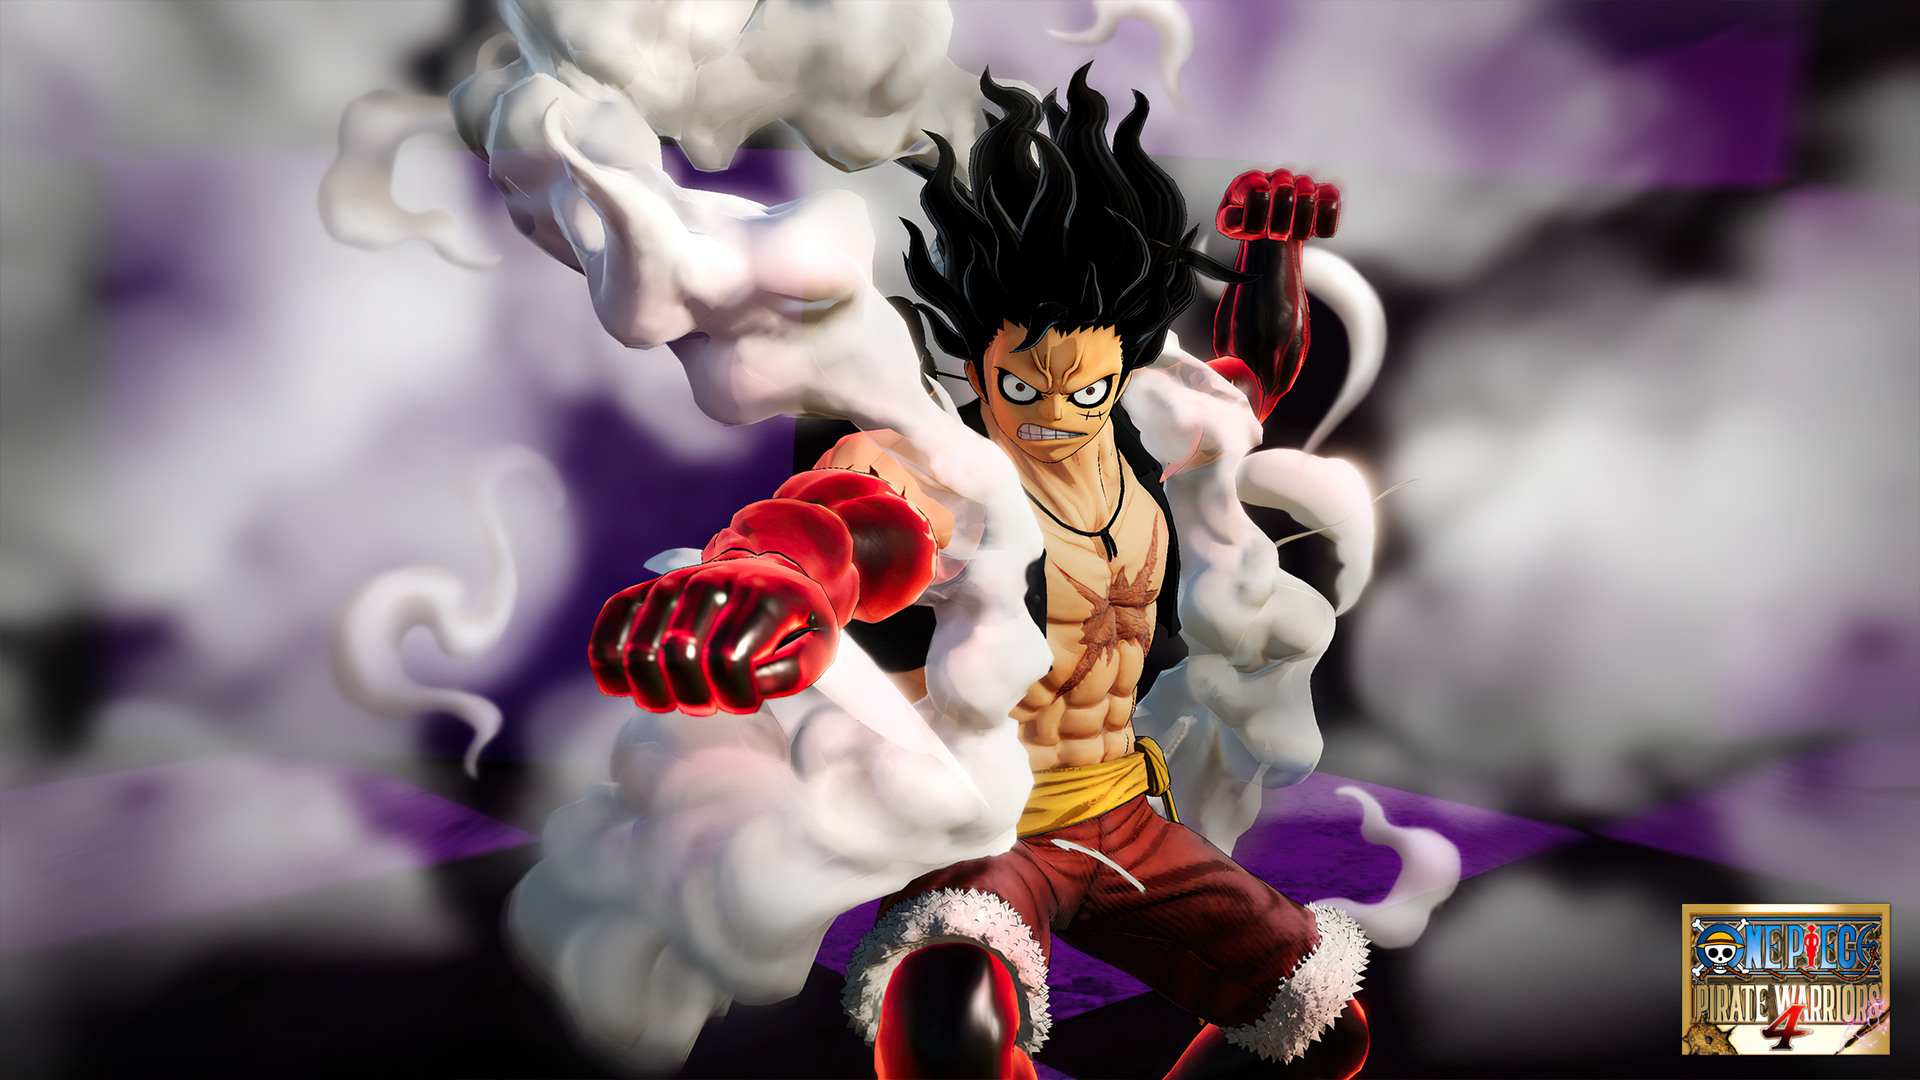 Make your device cooler and more beautiful. Luffy Snakeman One Piece Pirate Warriors 4 4k Wallpaper 5 1705